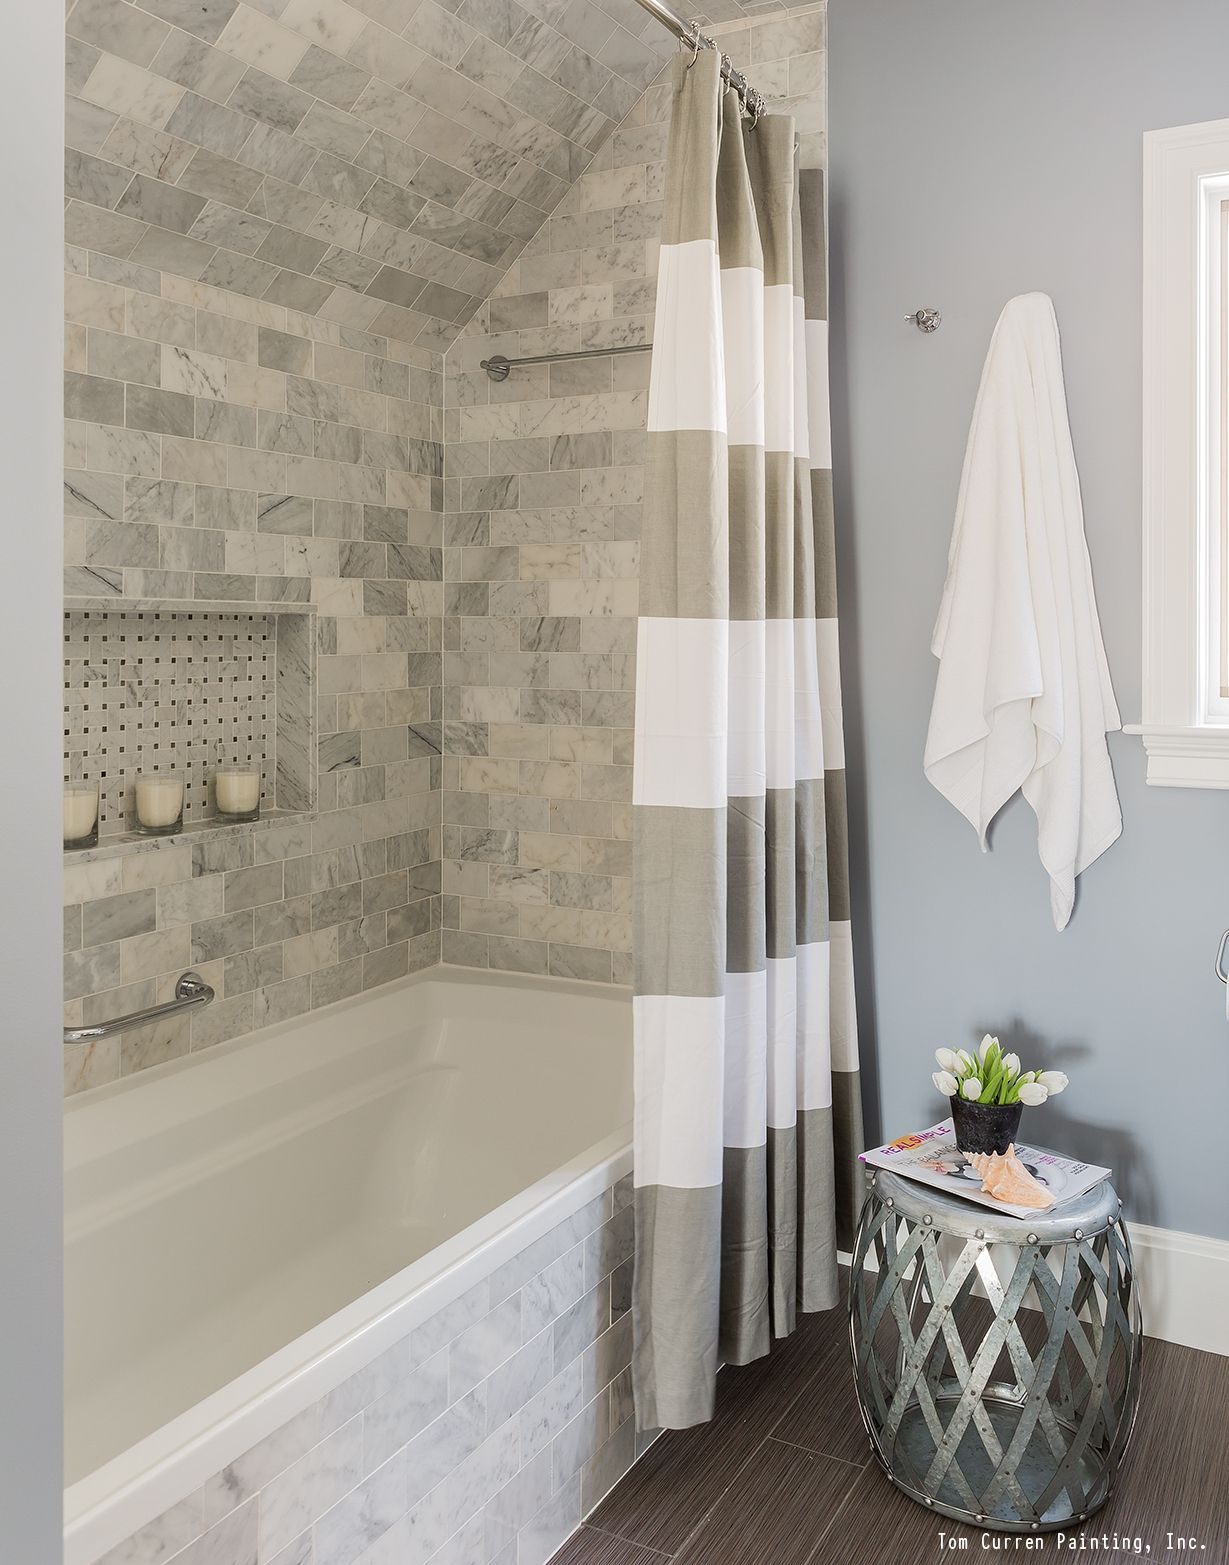 Remodel Bathroom Pinterest a gorgeous bathroom remodel with a tile shower, white trim and a